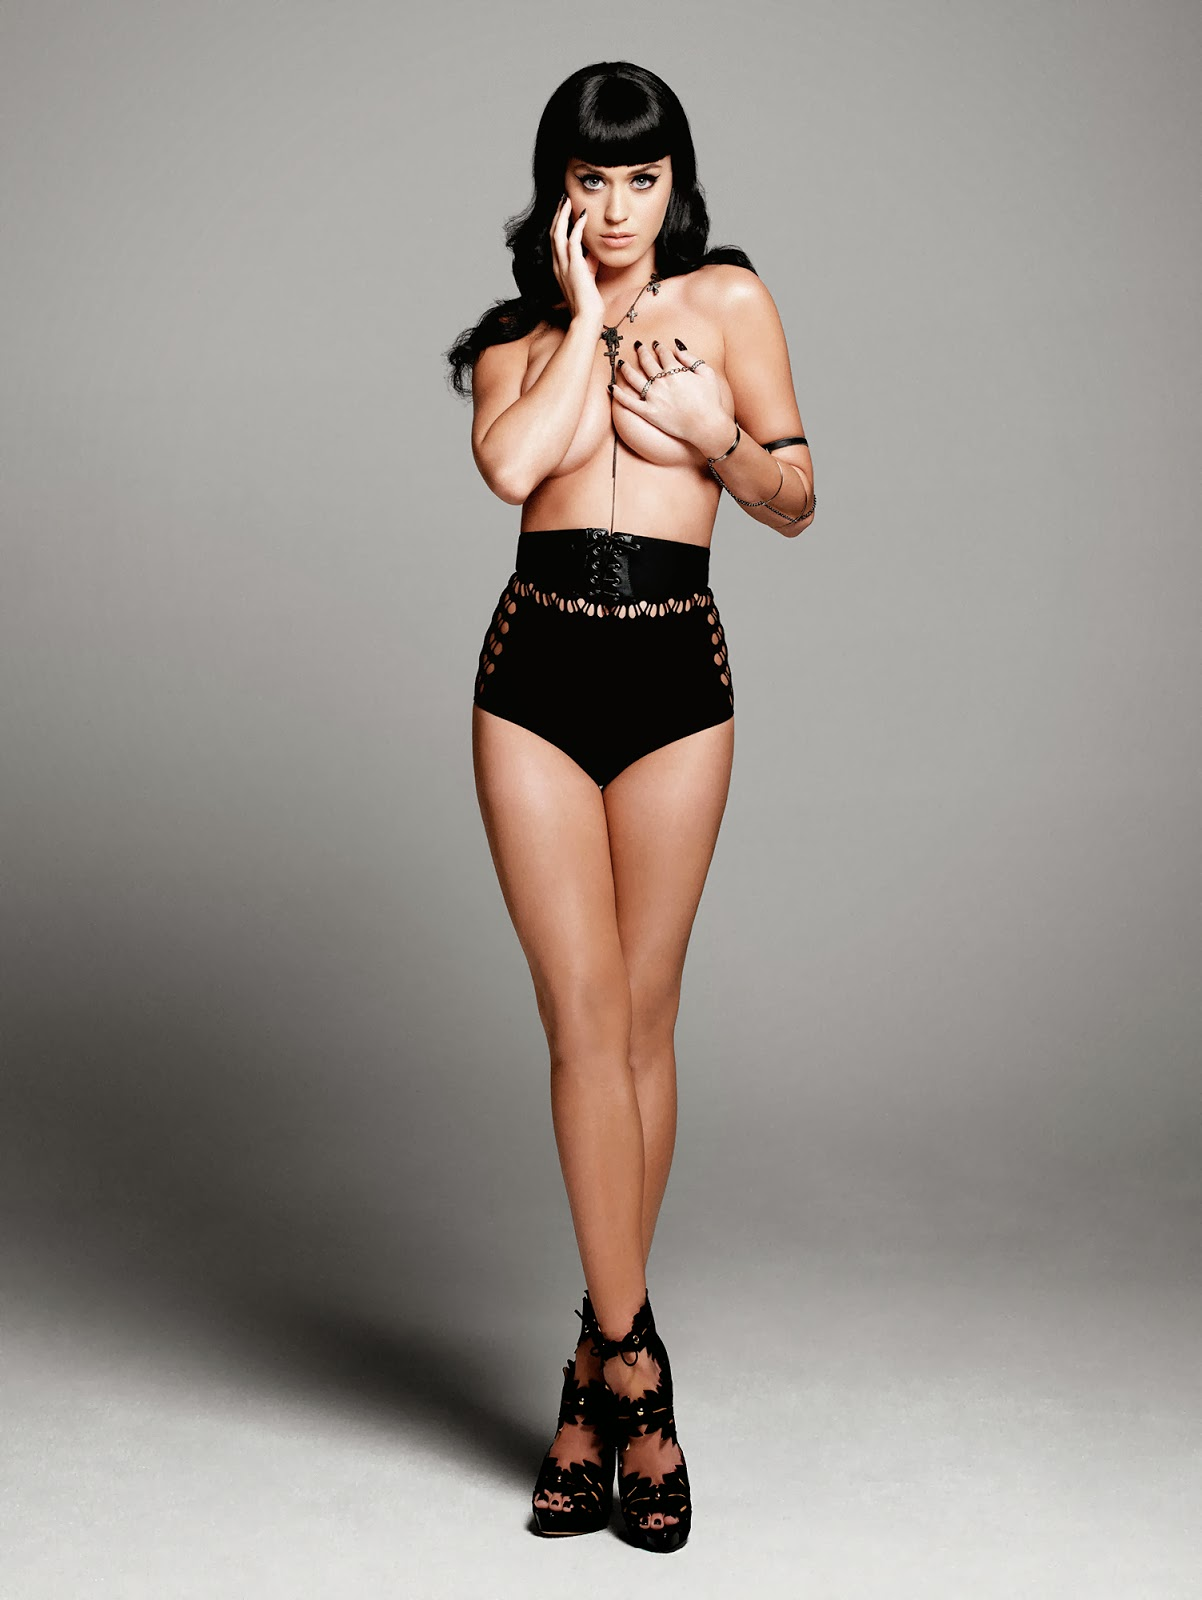 katy-perry-esquire-uk-magazine-photoshoot-2010-01-1.jpg